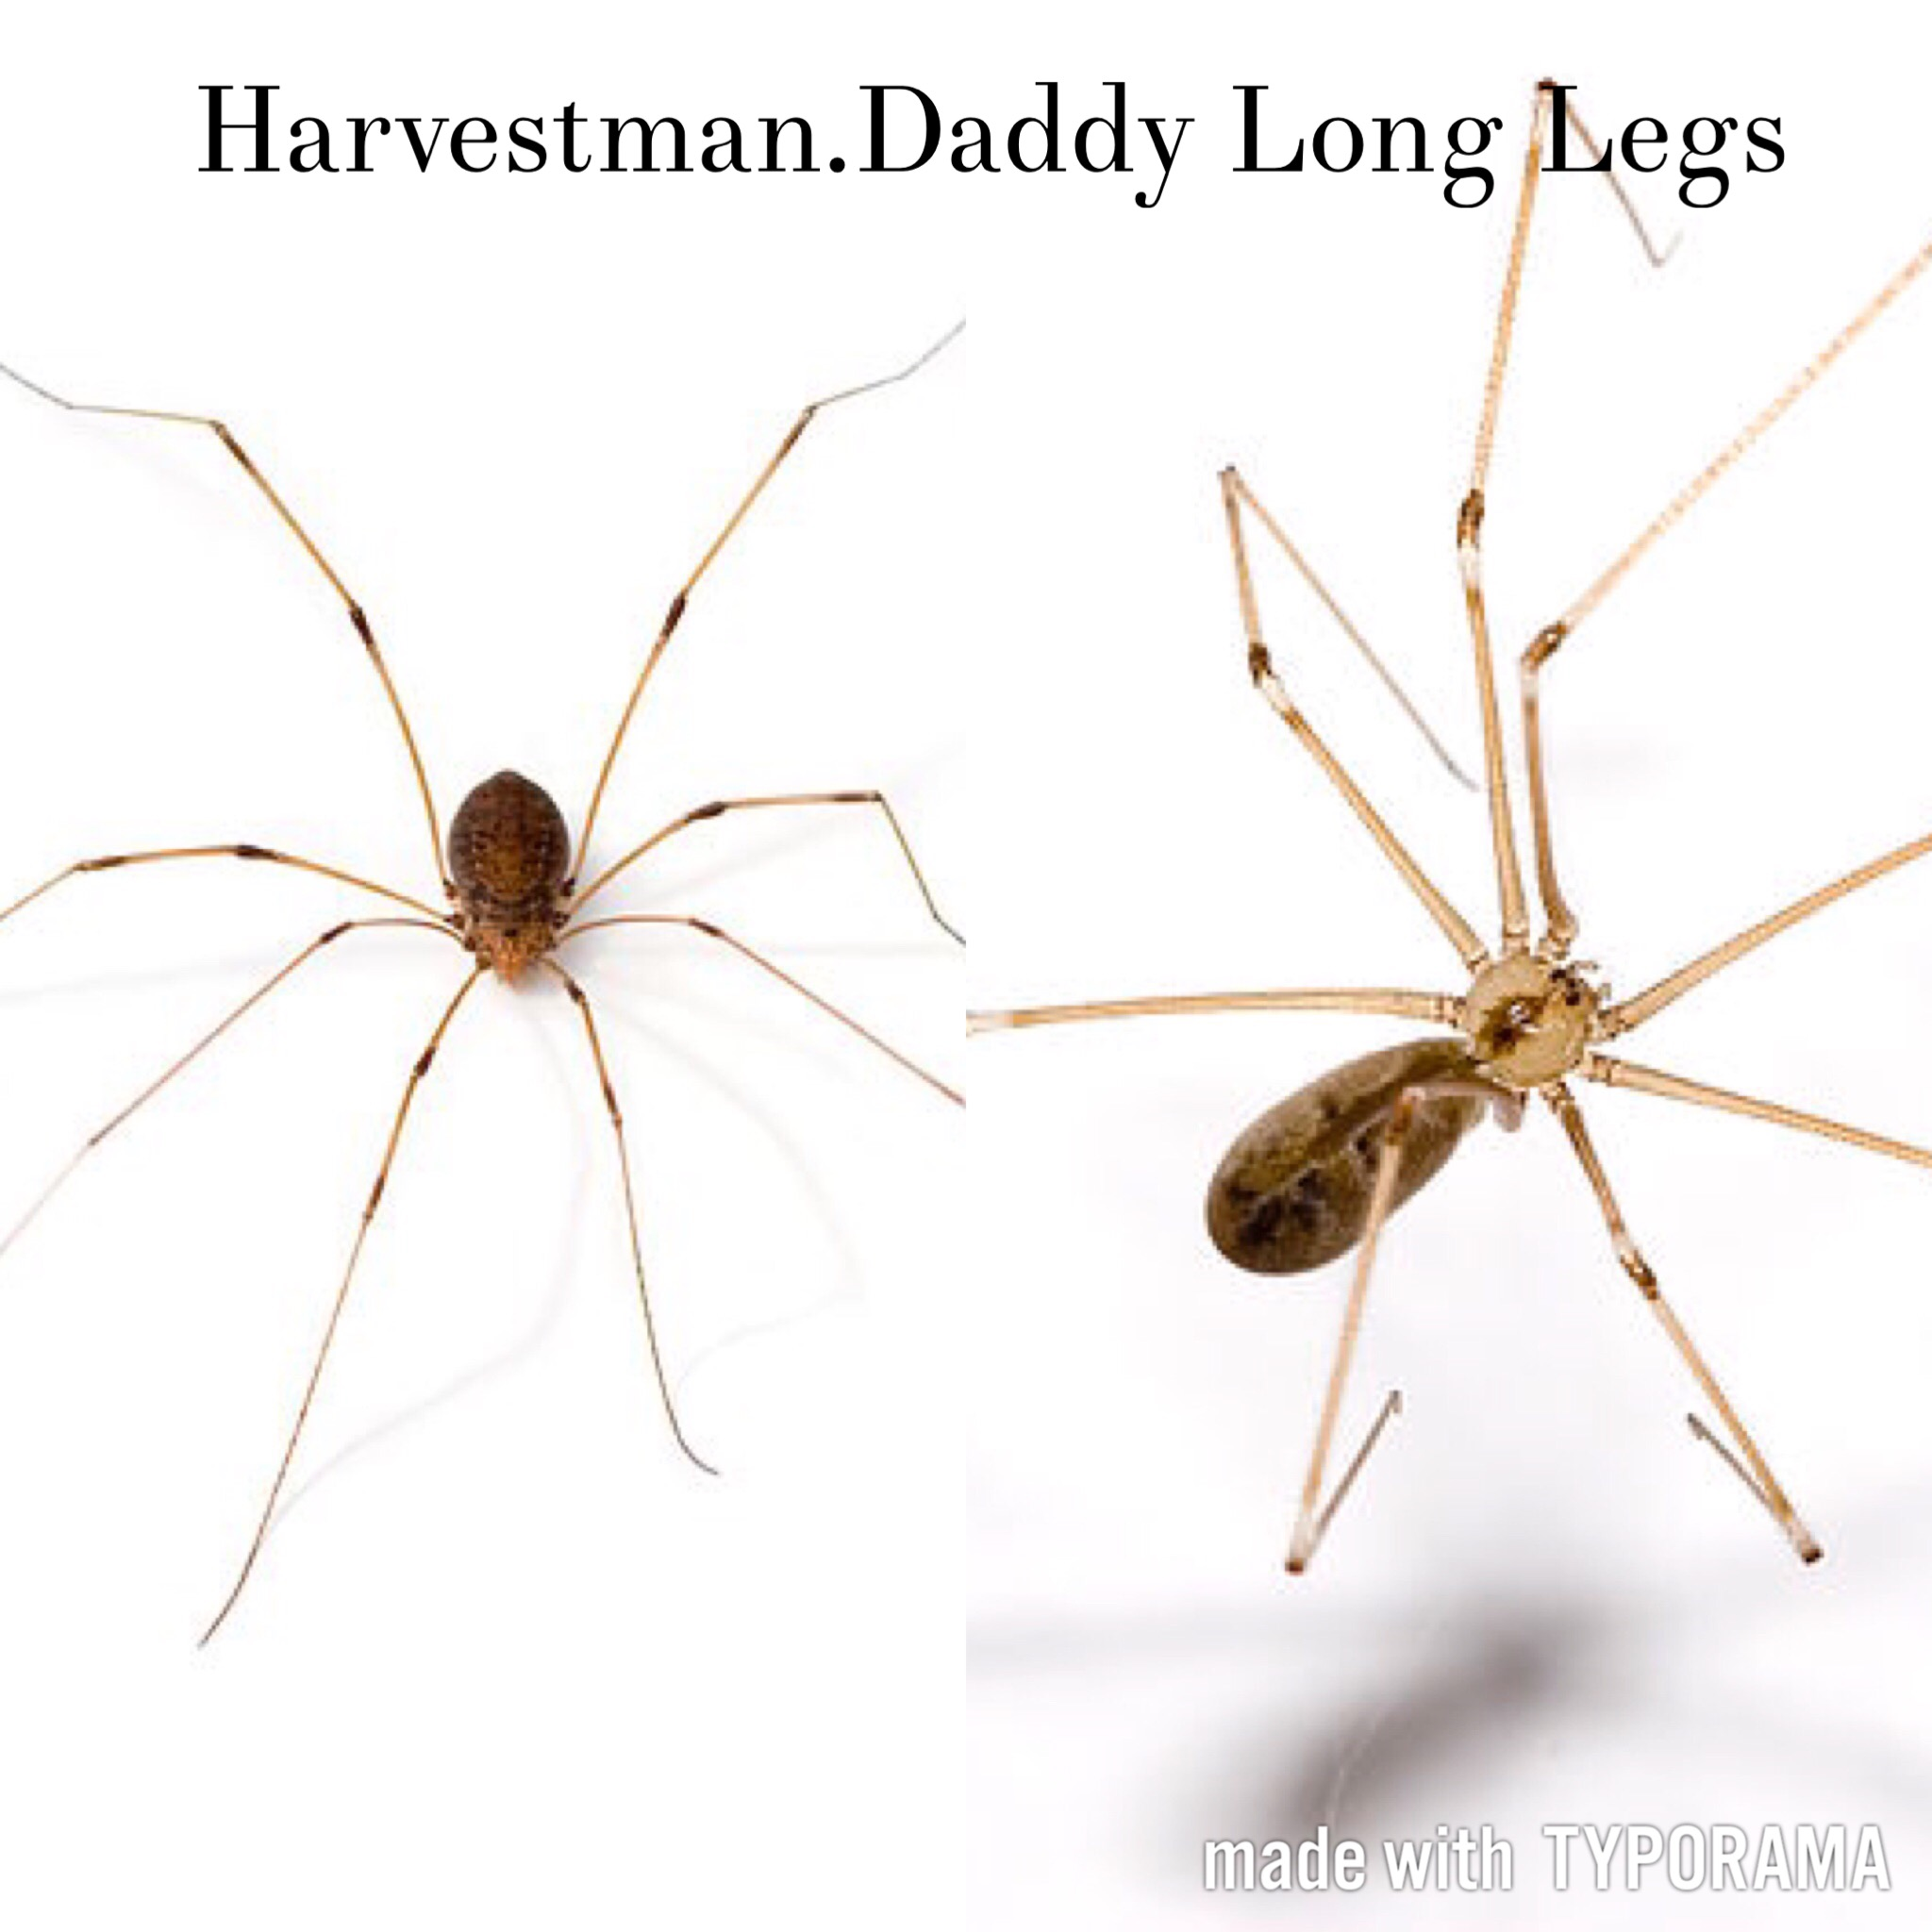 Harvestman vs daddy long legs - Album on Imgur